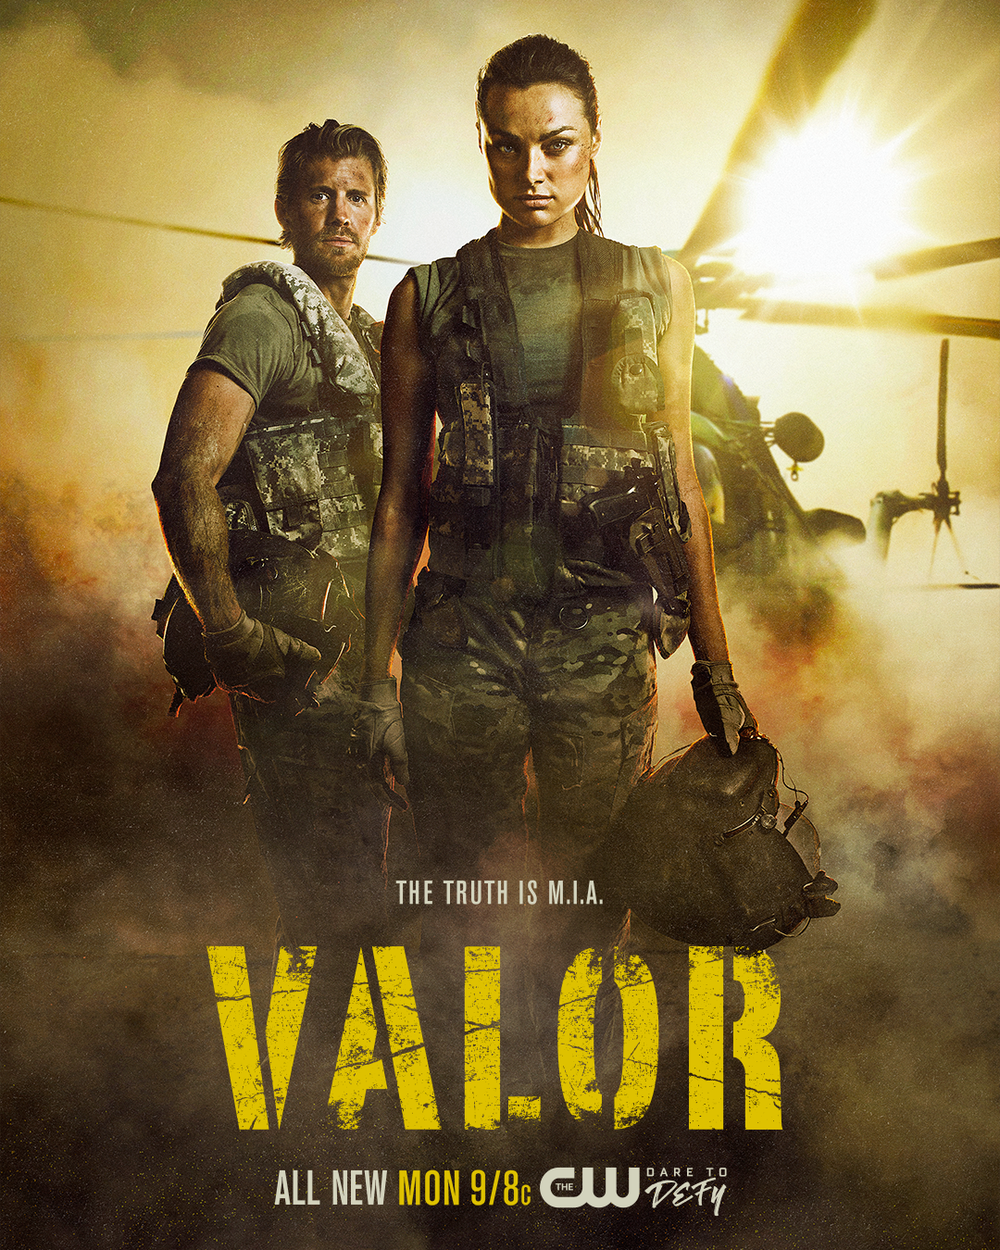 Valor, now streaming on Netflix.  https://www.netflix.com/title/80179371